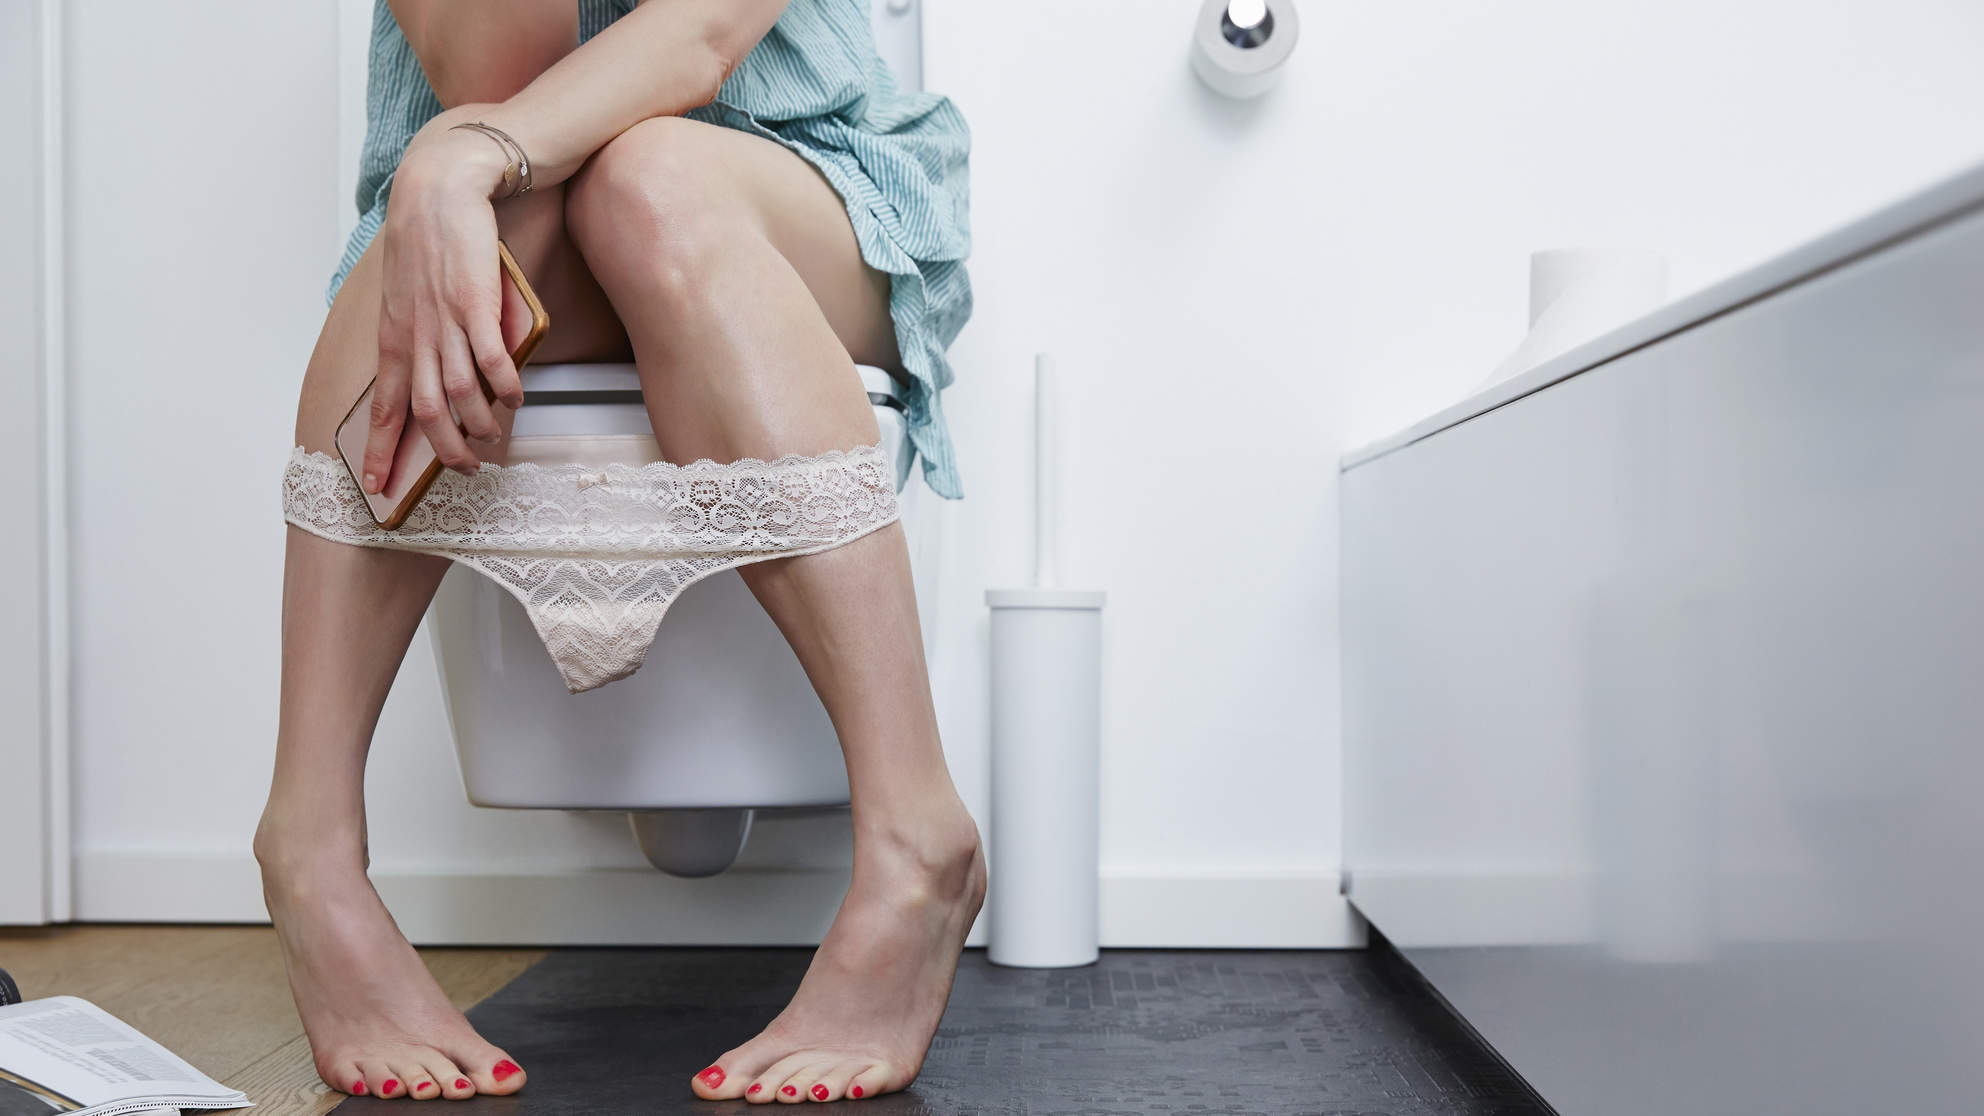 These 5 Bathroom Habits Could Be Making You Sick